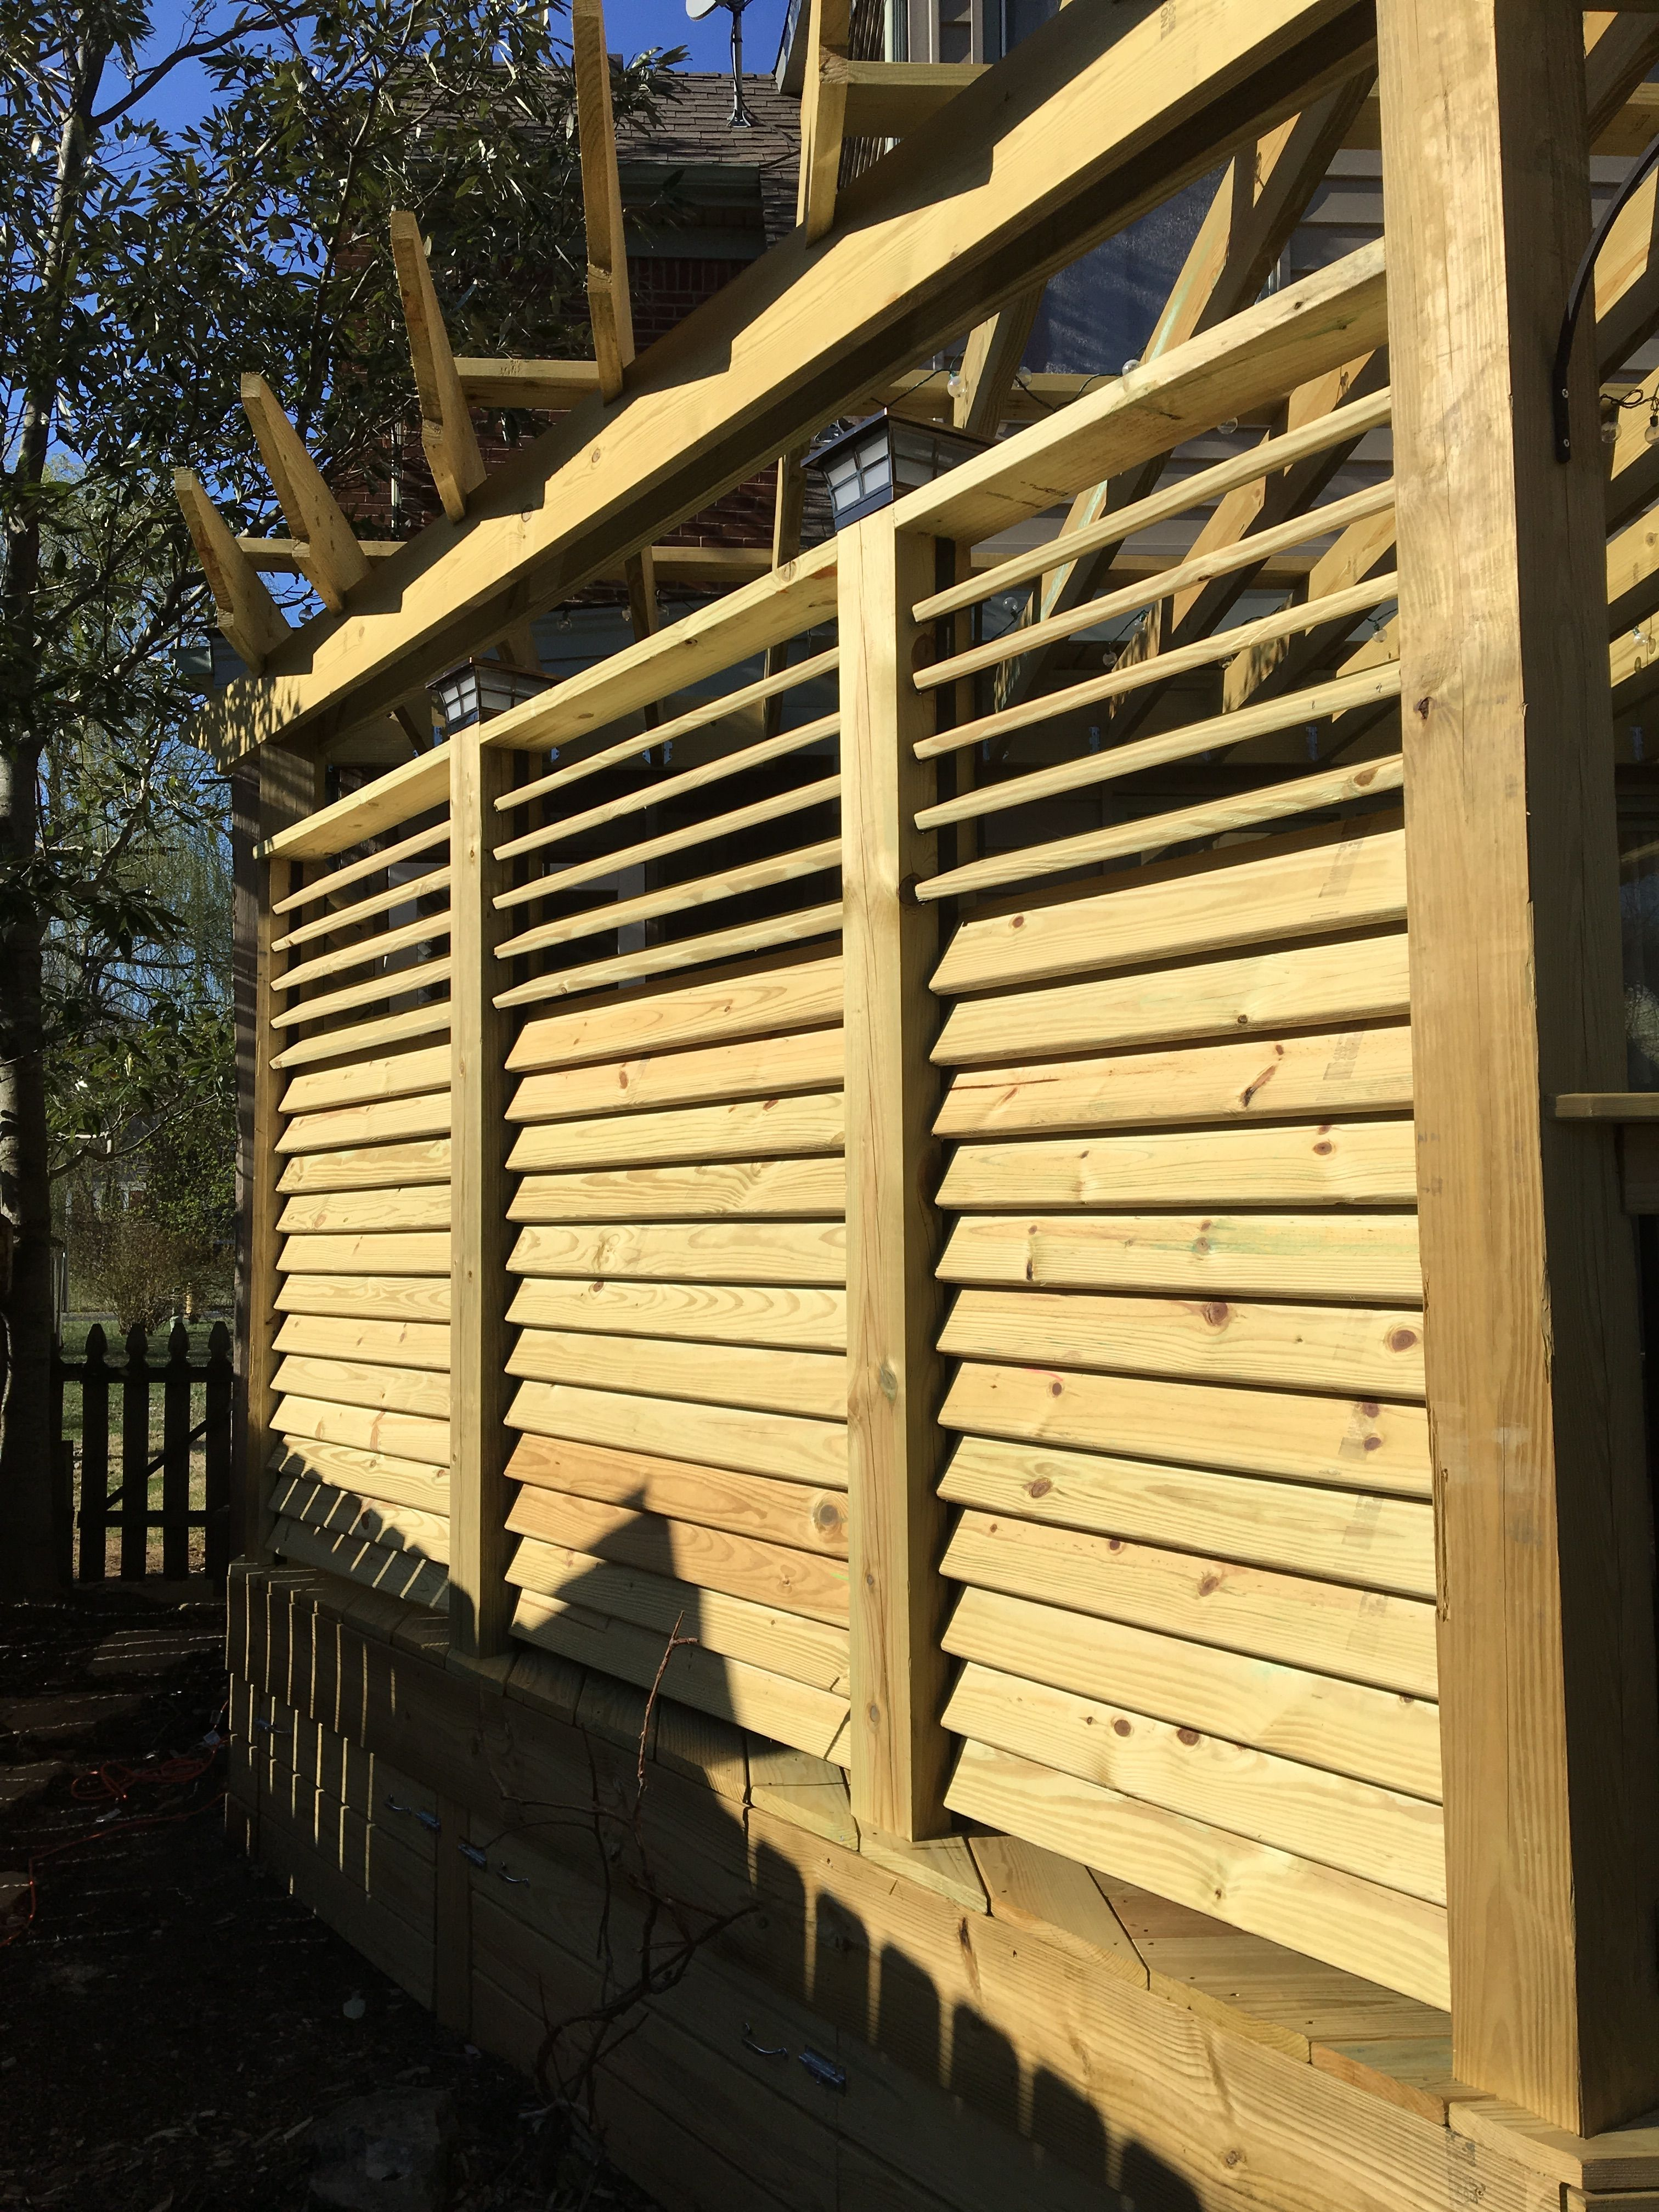 exterior view of a louvered fence project. the hardware system